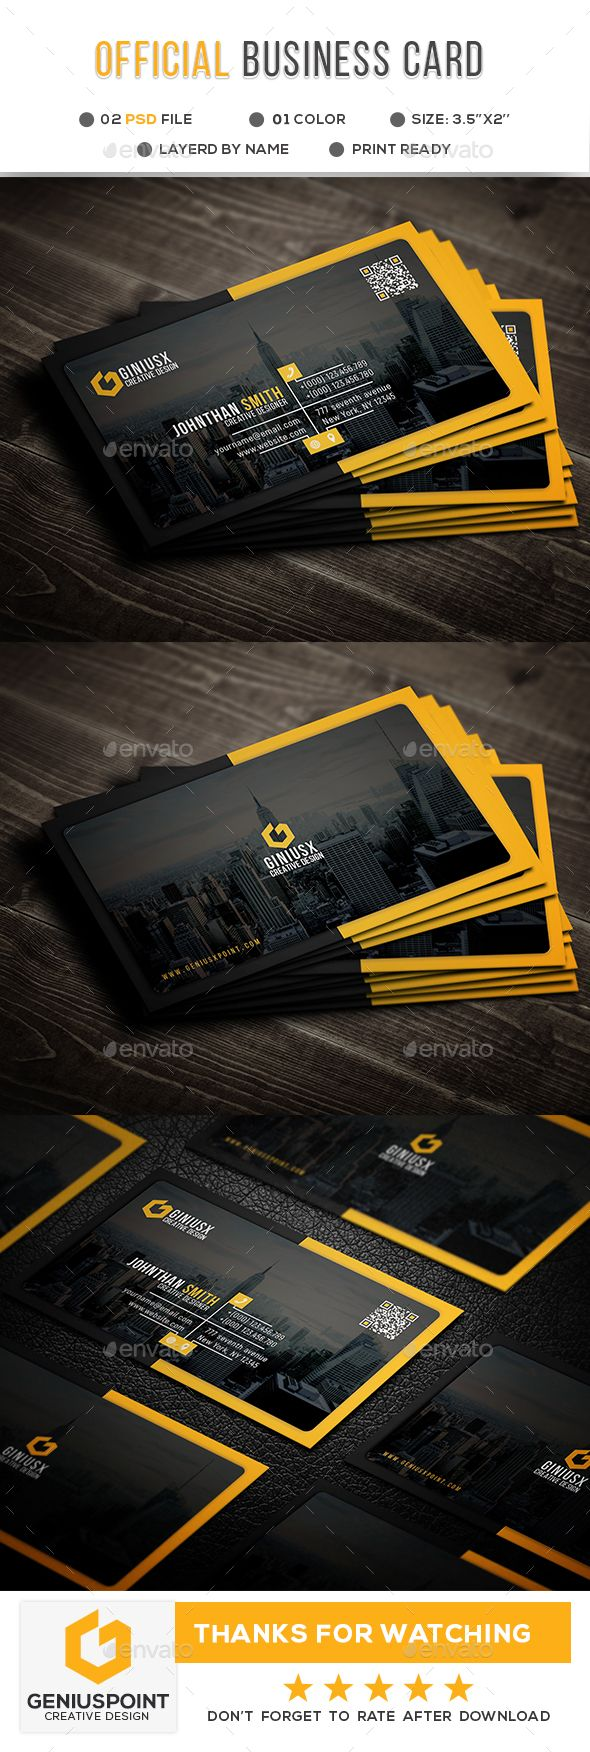 Official business card card templates business cards and template reheart Images